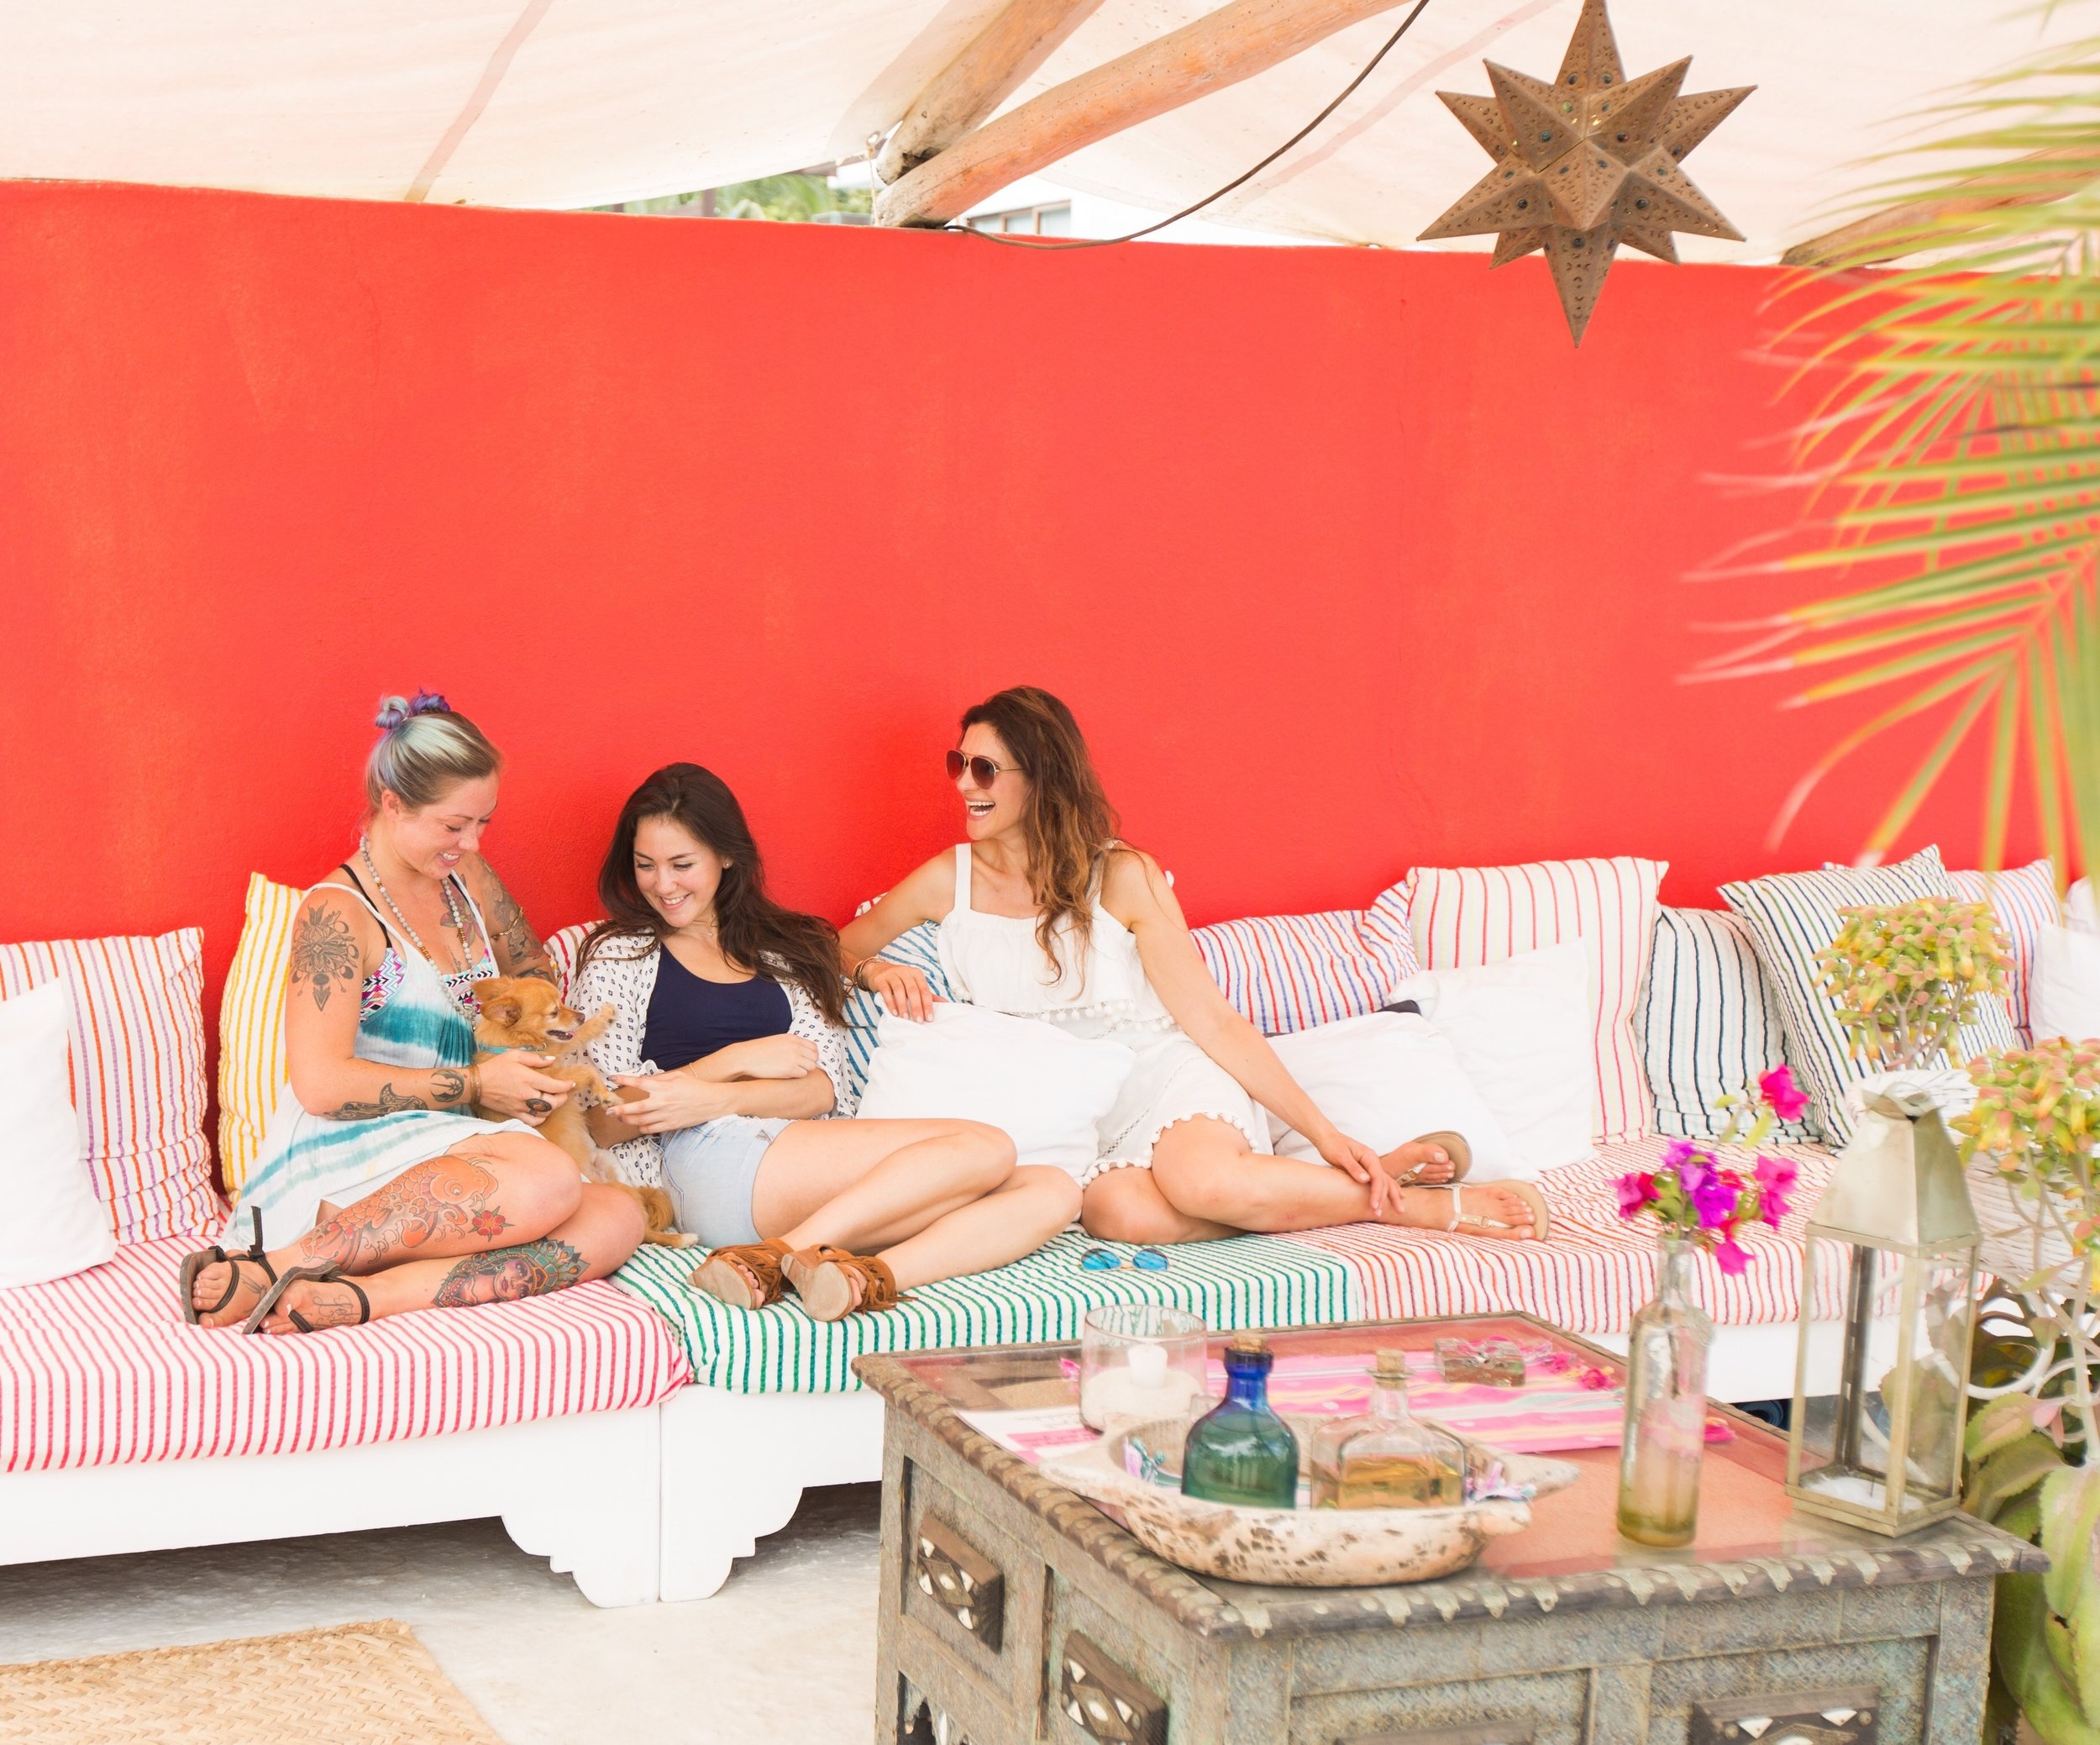 Rooftop lounging at the Petit Hotel Hafa in Sayulita, with Mandy Martini, Paige Rene, and Sergio the dog.  Photography by Nathan Rose  Photography .